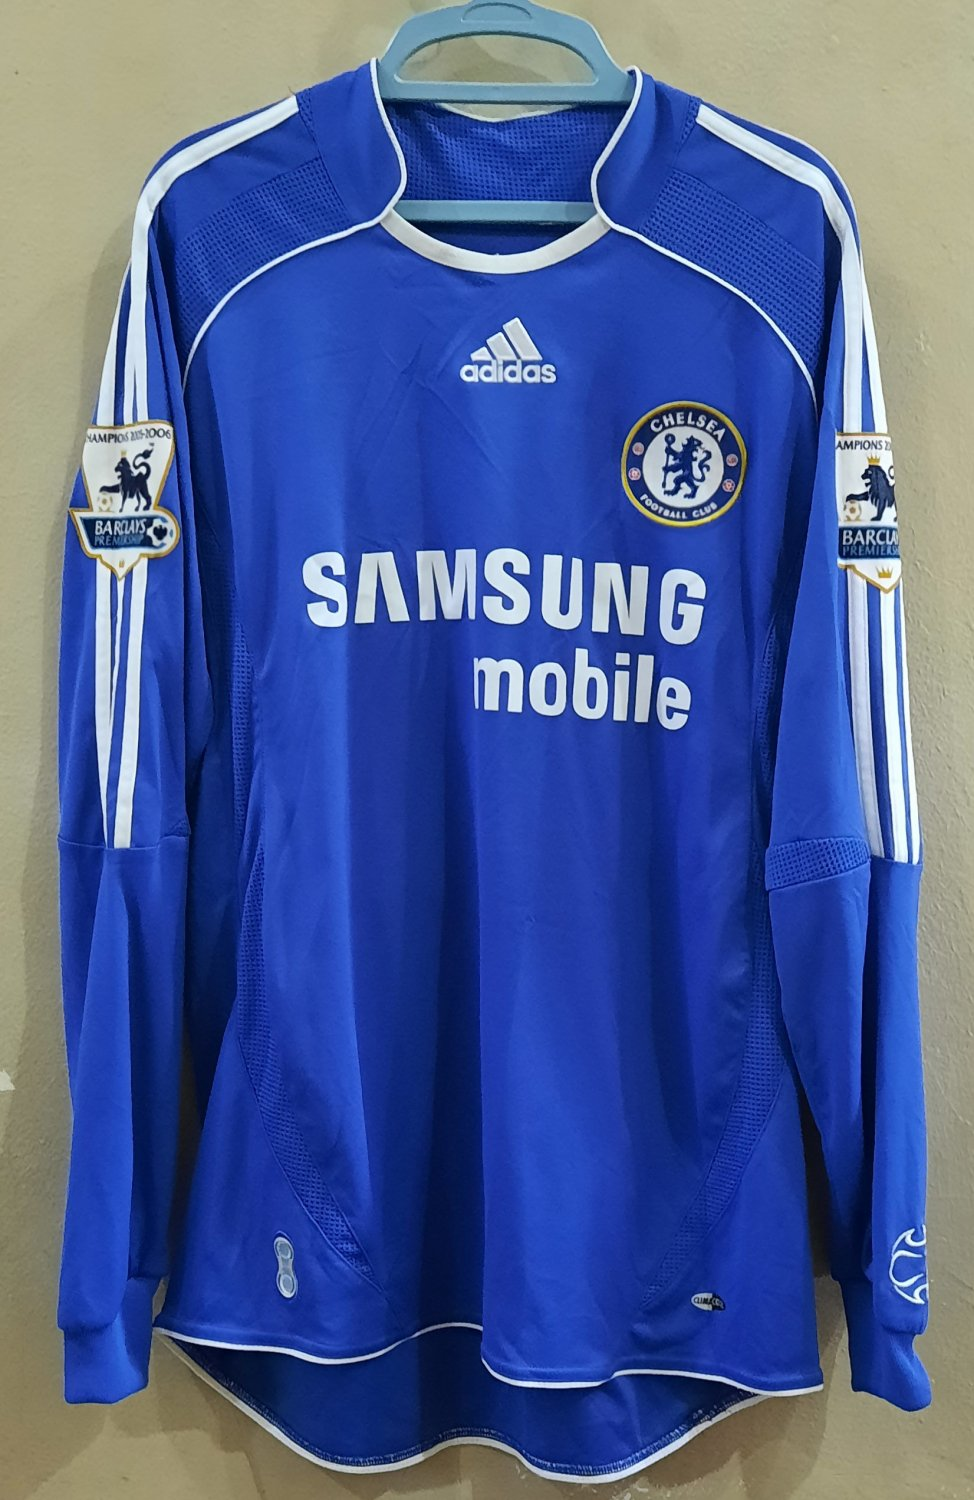 new style 2ff2e 4ec57 Chelsea Home Maillot de foot 2006 - 2008. Sponsored by ...